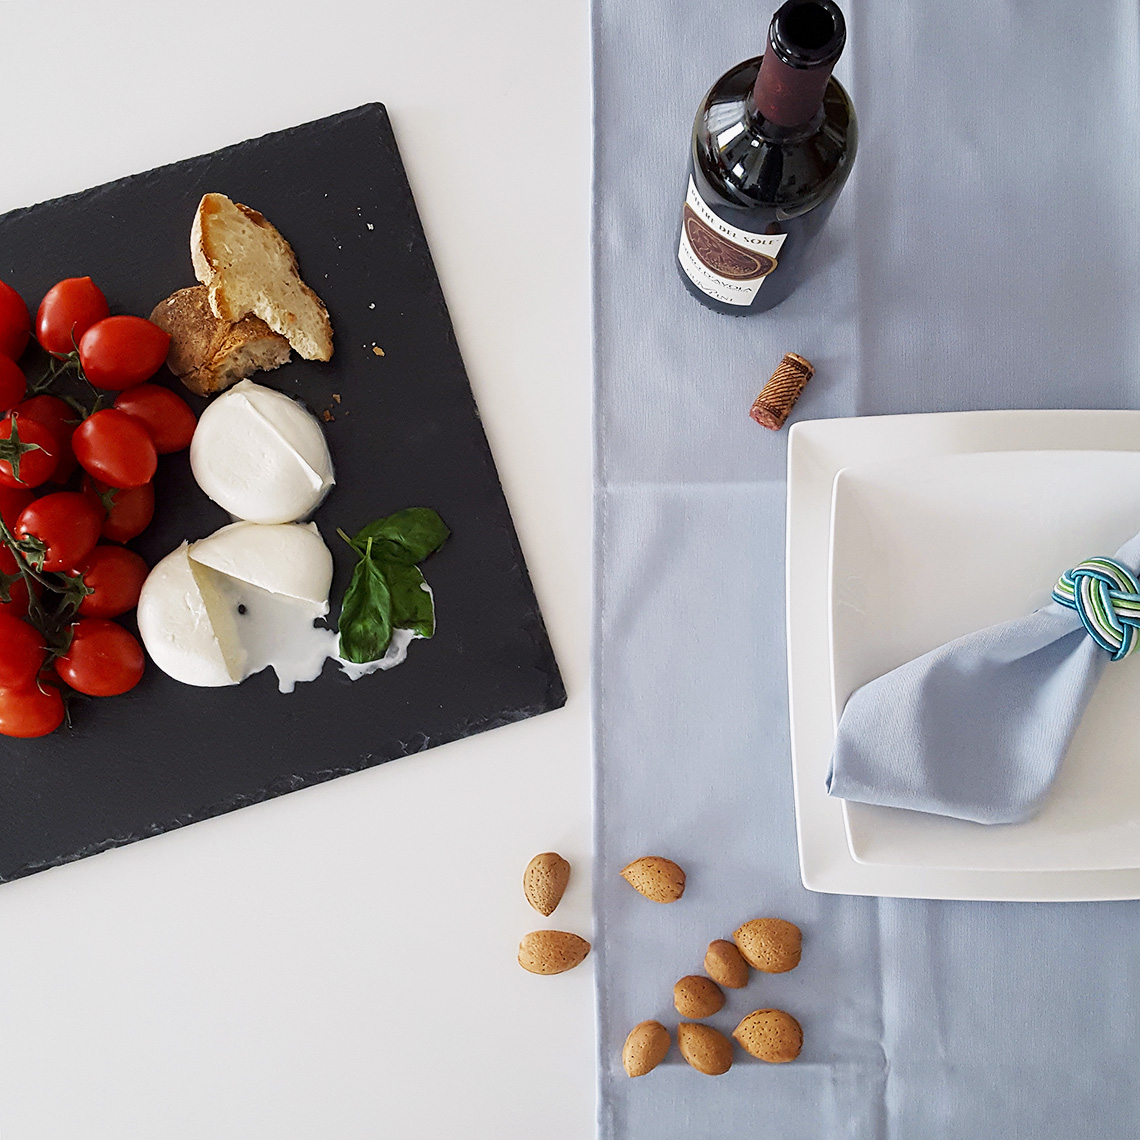 la_tavola_in_estate_dressing_and_toppings_11_26403488210_o